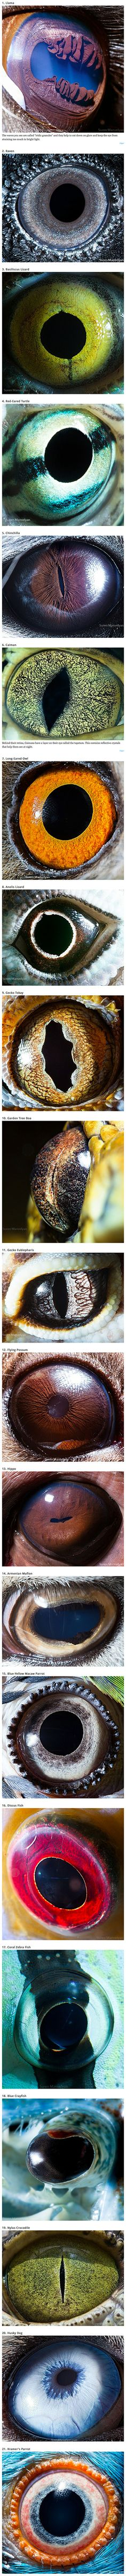 Armenian photographer Suren Manvelyan has a preoccupation with the windows to your soul. That's right, he takes pictures of eyes! His series on animal eyes is absolutely stunning, and it shows how much something so simple can vary between species. From parrots to llamas, each of his macro photographs show how perfectly adapted each eye is to its owner's unique life.